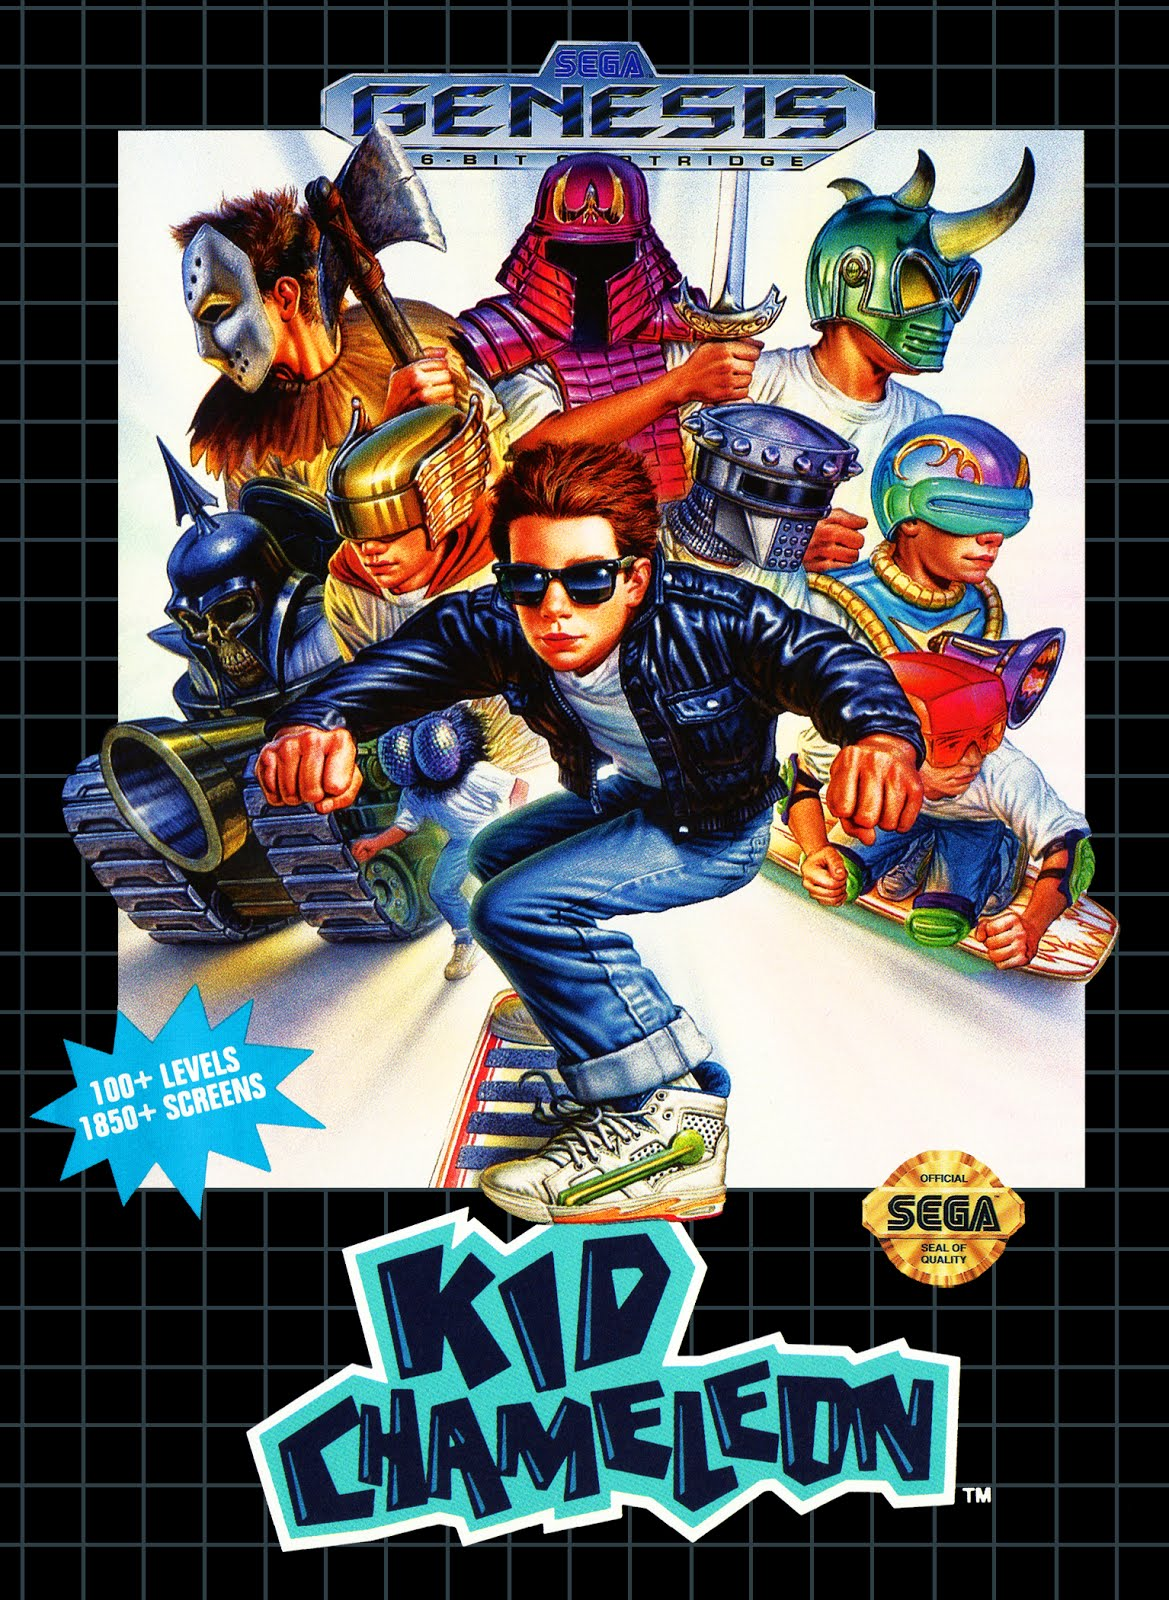 Kid Chameleon (video game) - Download Sega Genesis Roms Online For